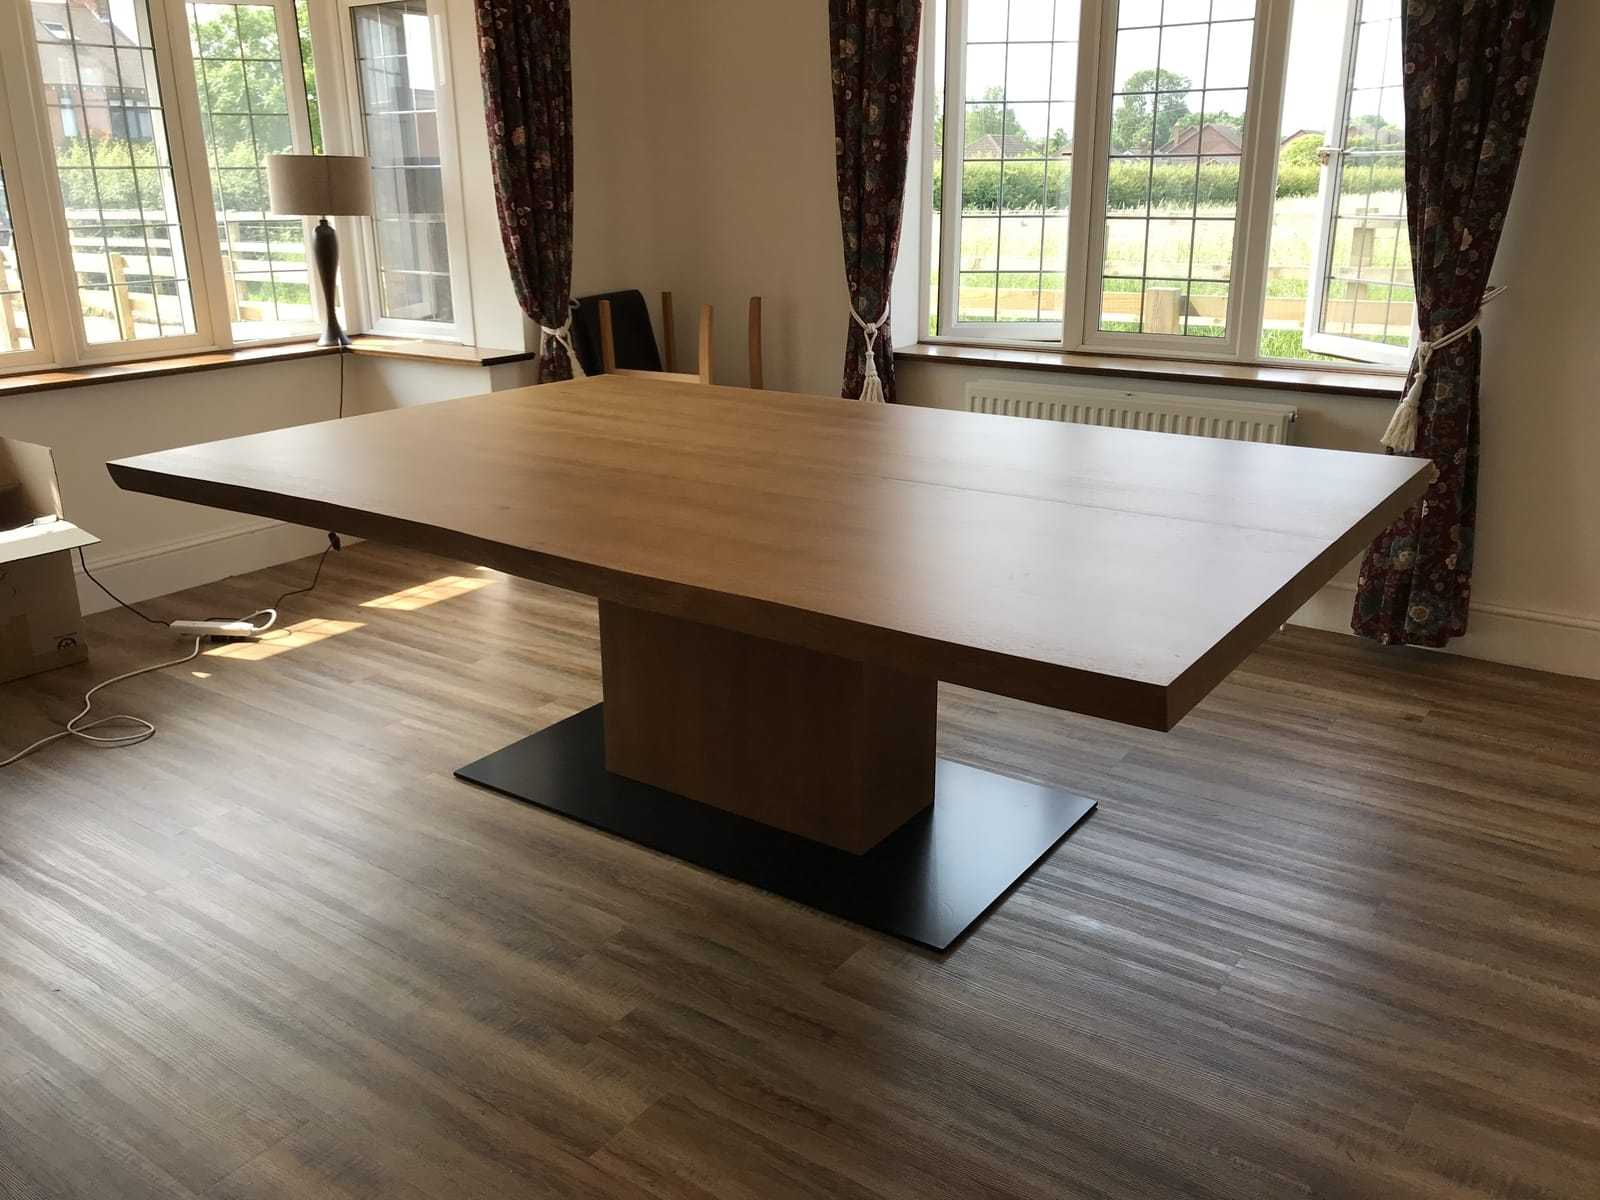 Bespoke oak dining table project 670 Abacus Tables image 2